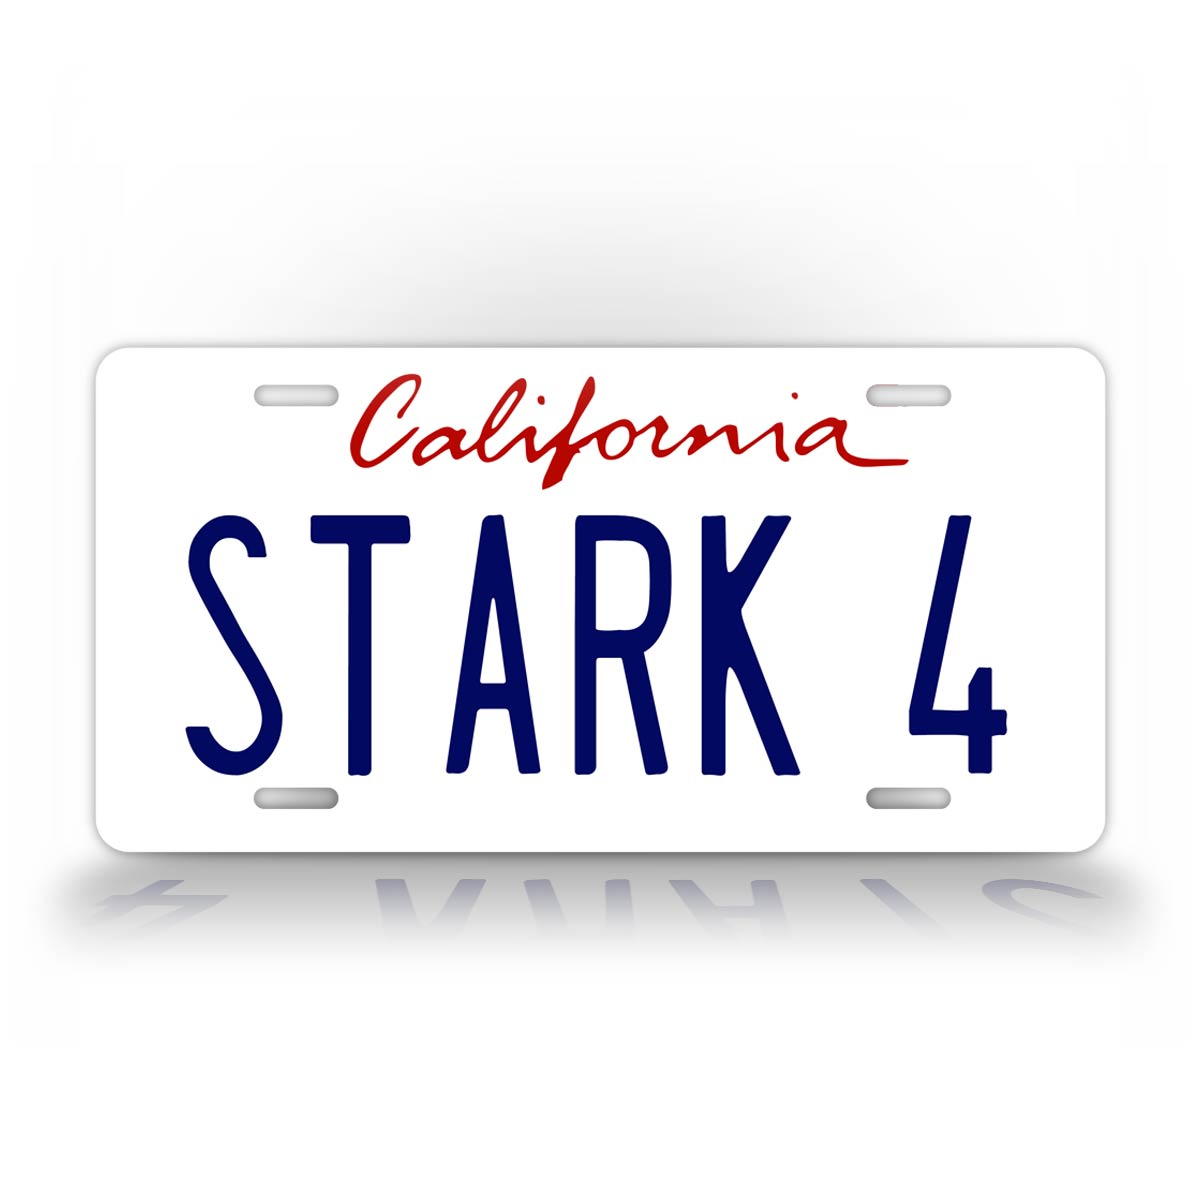 California Stark 4 Iron Man License Plate Marval Auto Tag